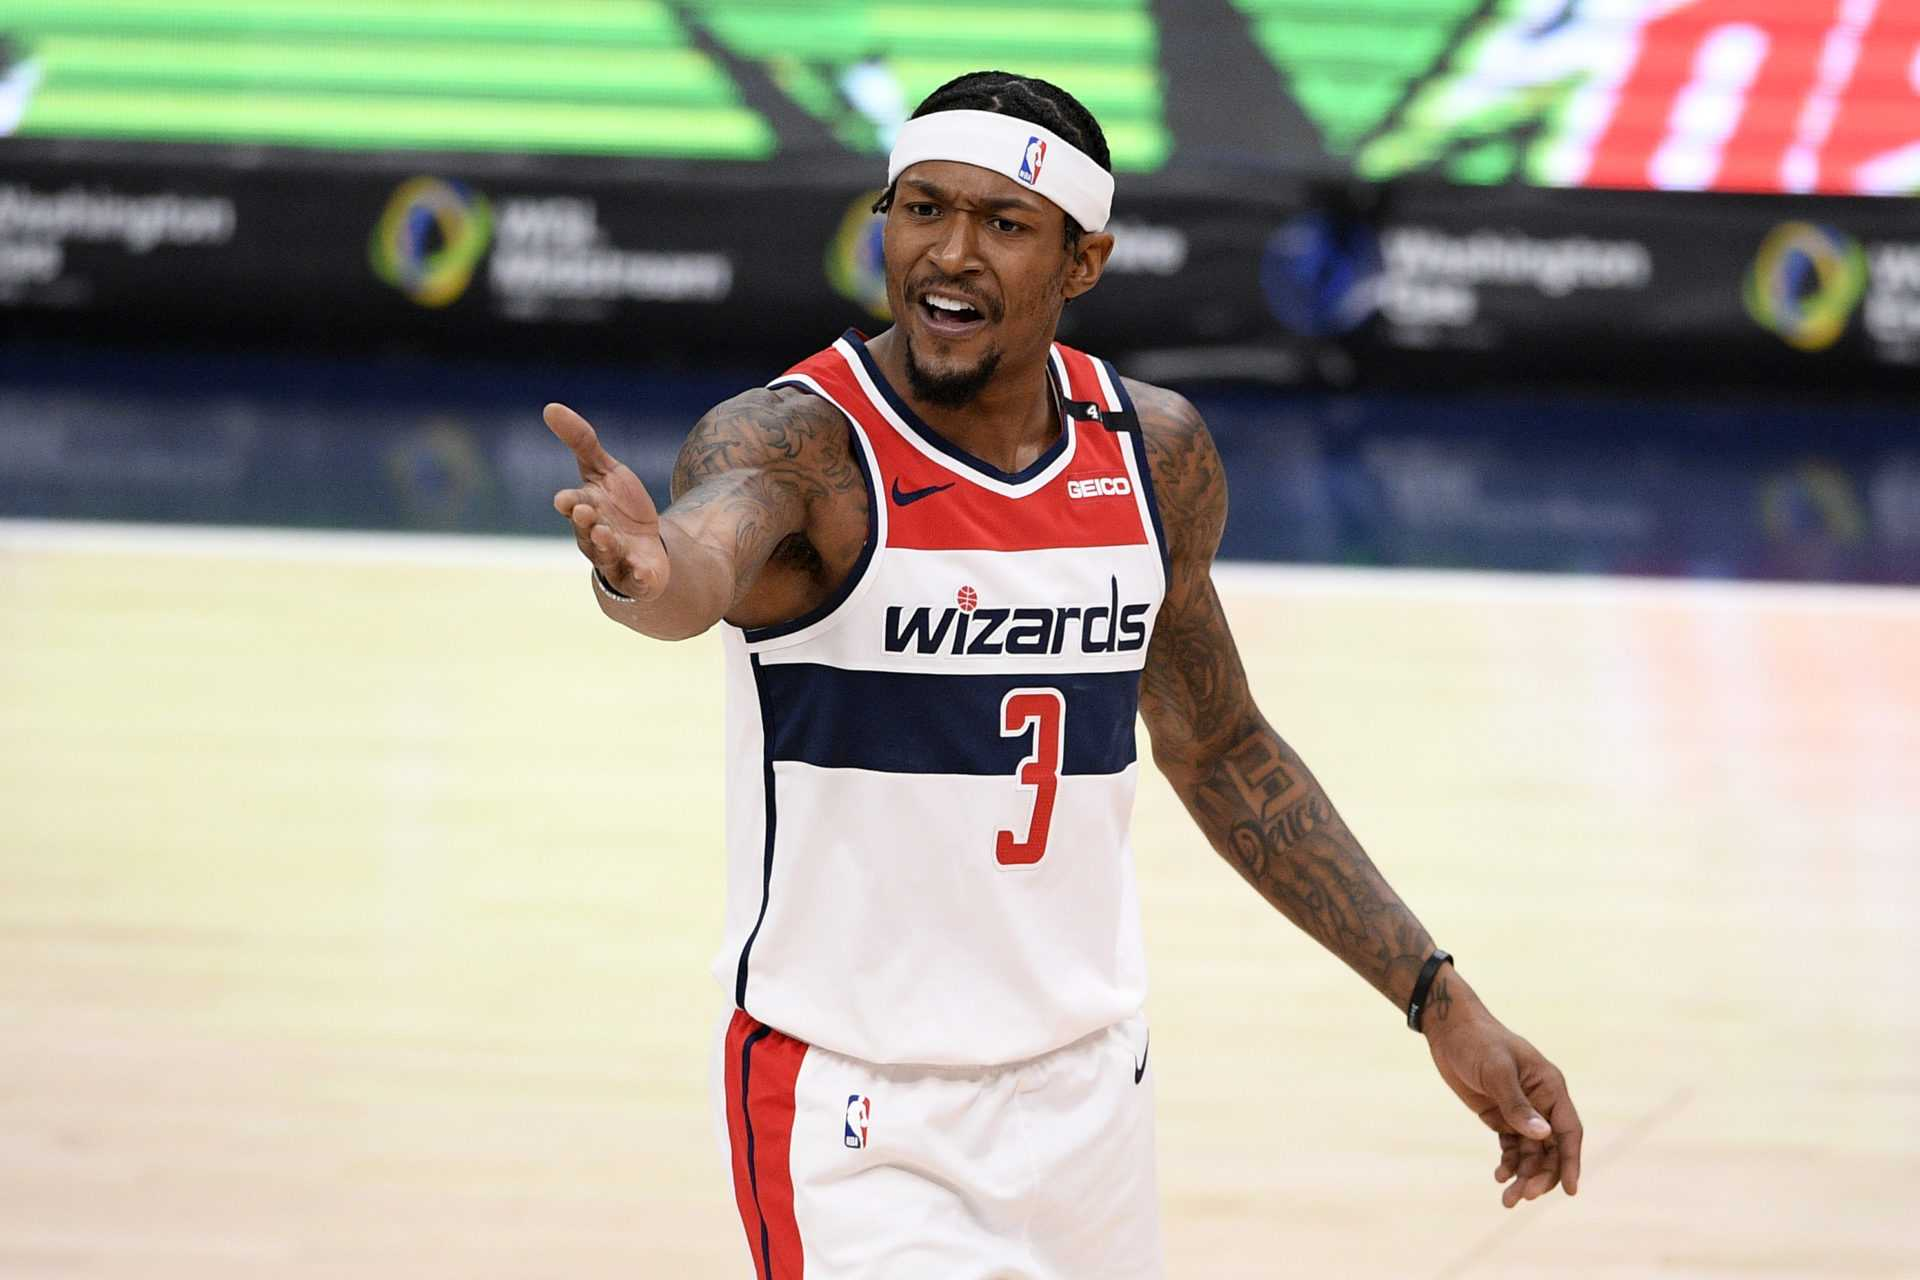 Six Explanations for the Wizards Disappointing Start